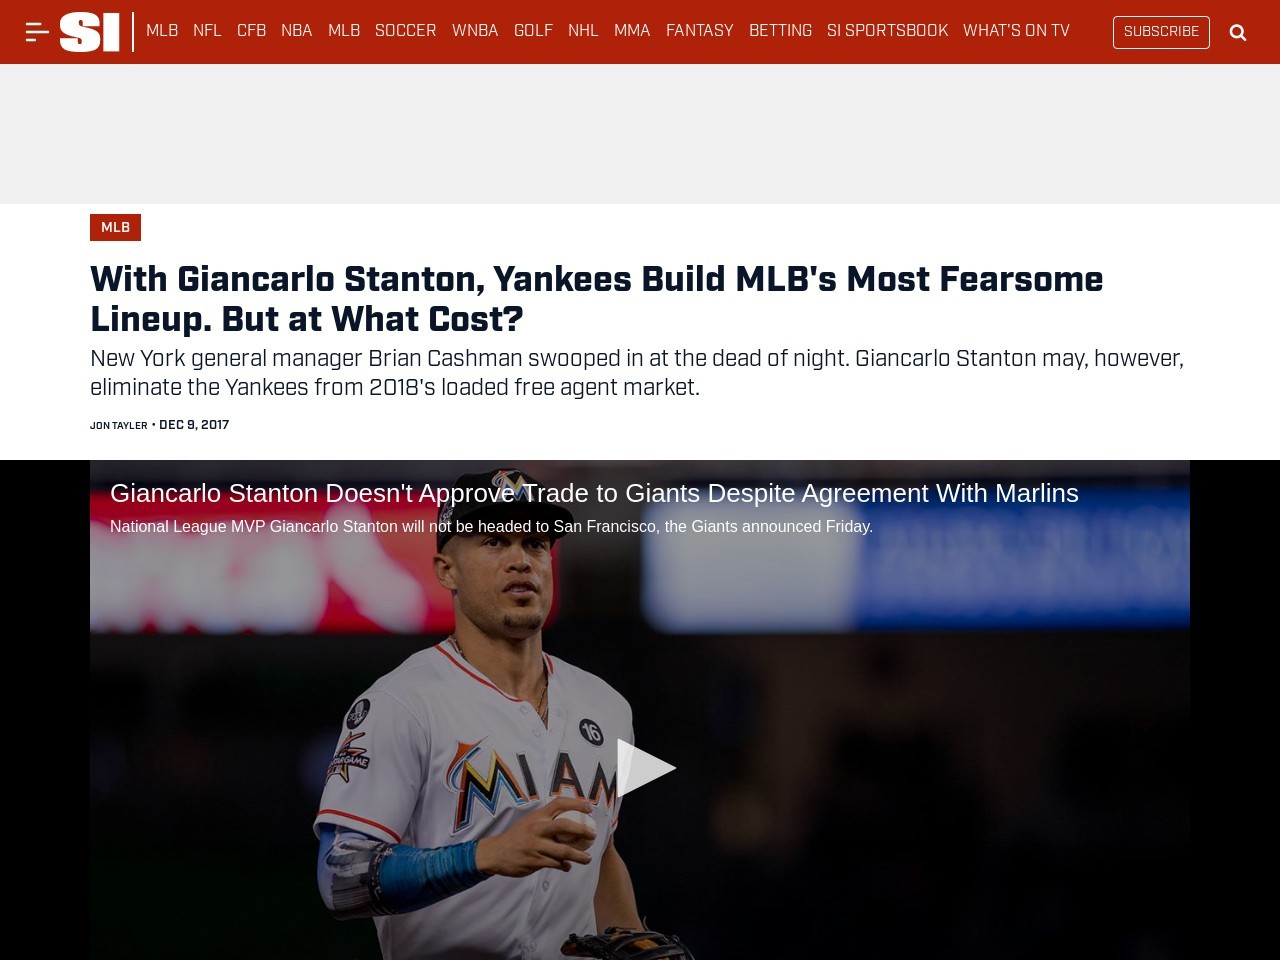 With Giancarlo Stanton, Yankees Build MLB's Most Fearsome Lineup. But at What Cost?